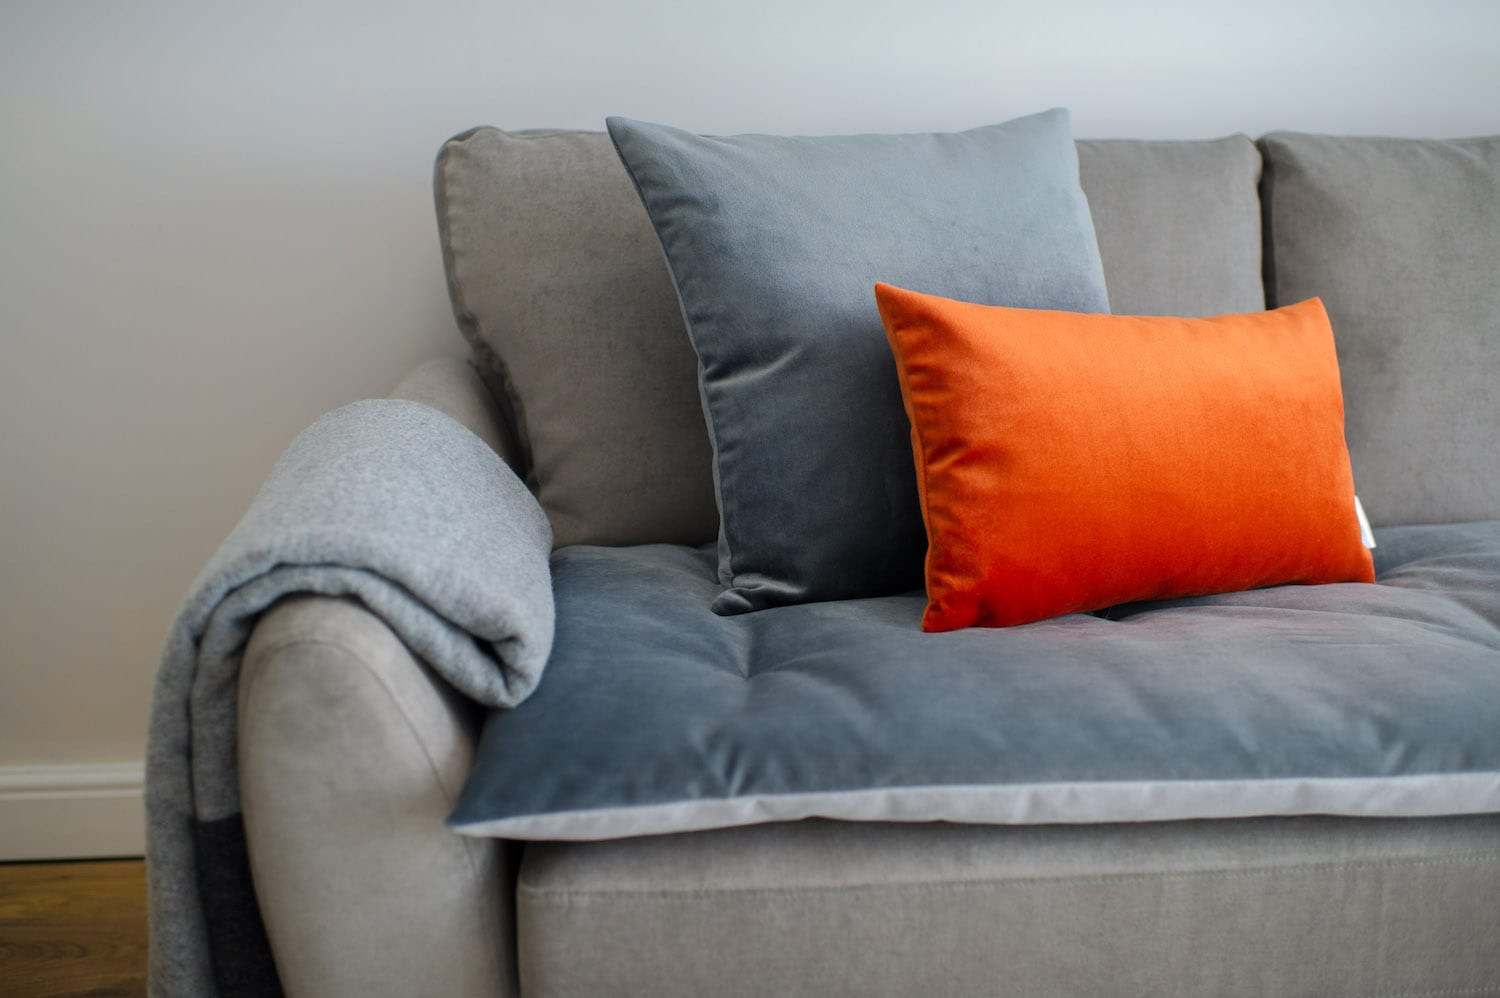 sofa topper and two velvet cushions buy one get one free the rh thelounginghound com where to buy replacement sofa cushions where to get sofa cushions restuffed